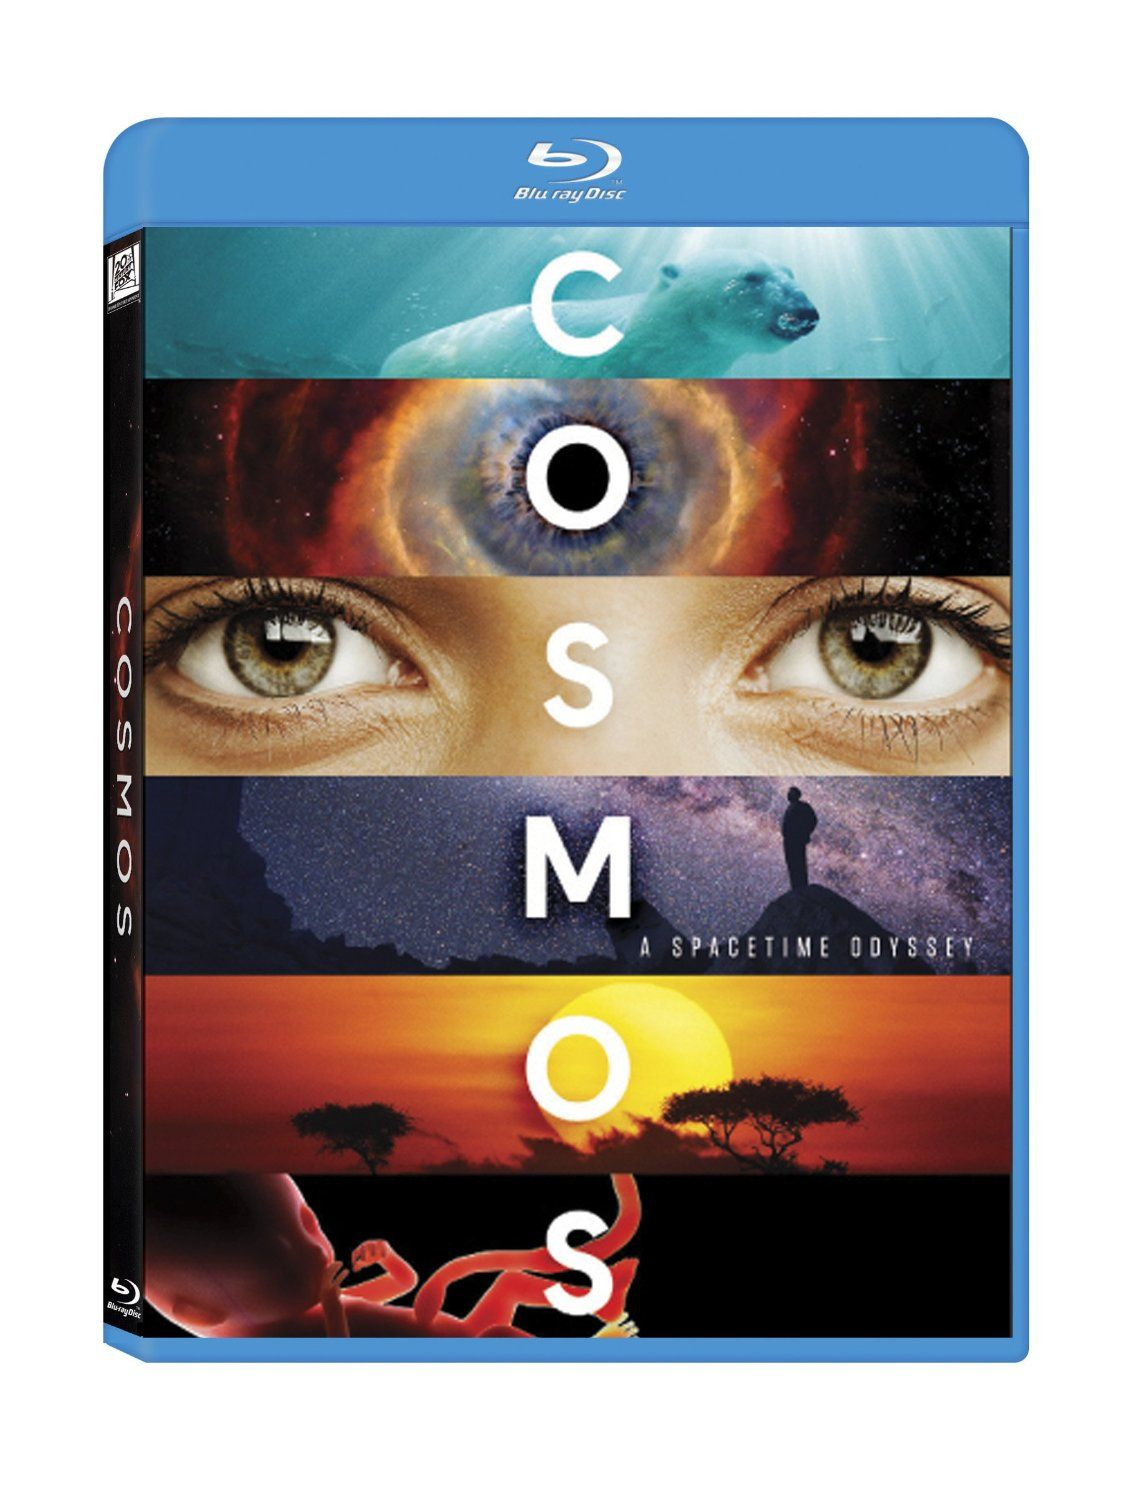 Cosmos: A Space Time Odyssey BDR | Geekfest | A spacetime